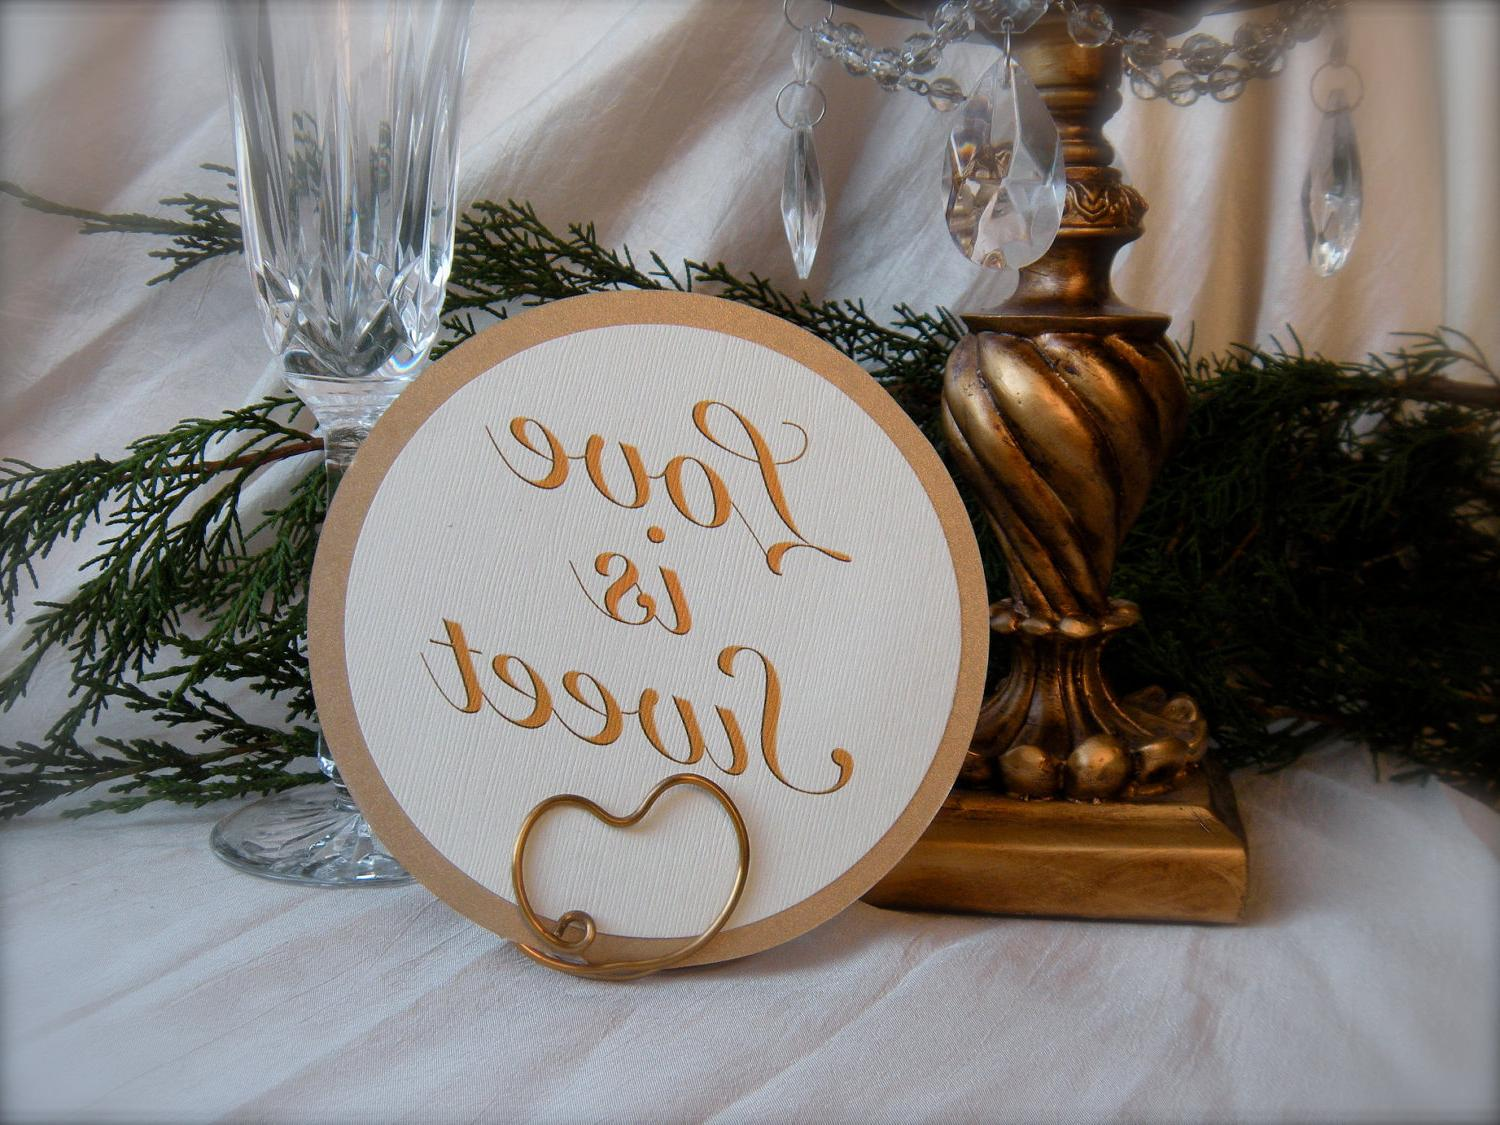 Table Place Holder Wedding, Antique Gold, 32. From HomesAndWeddings